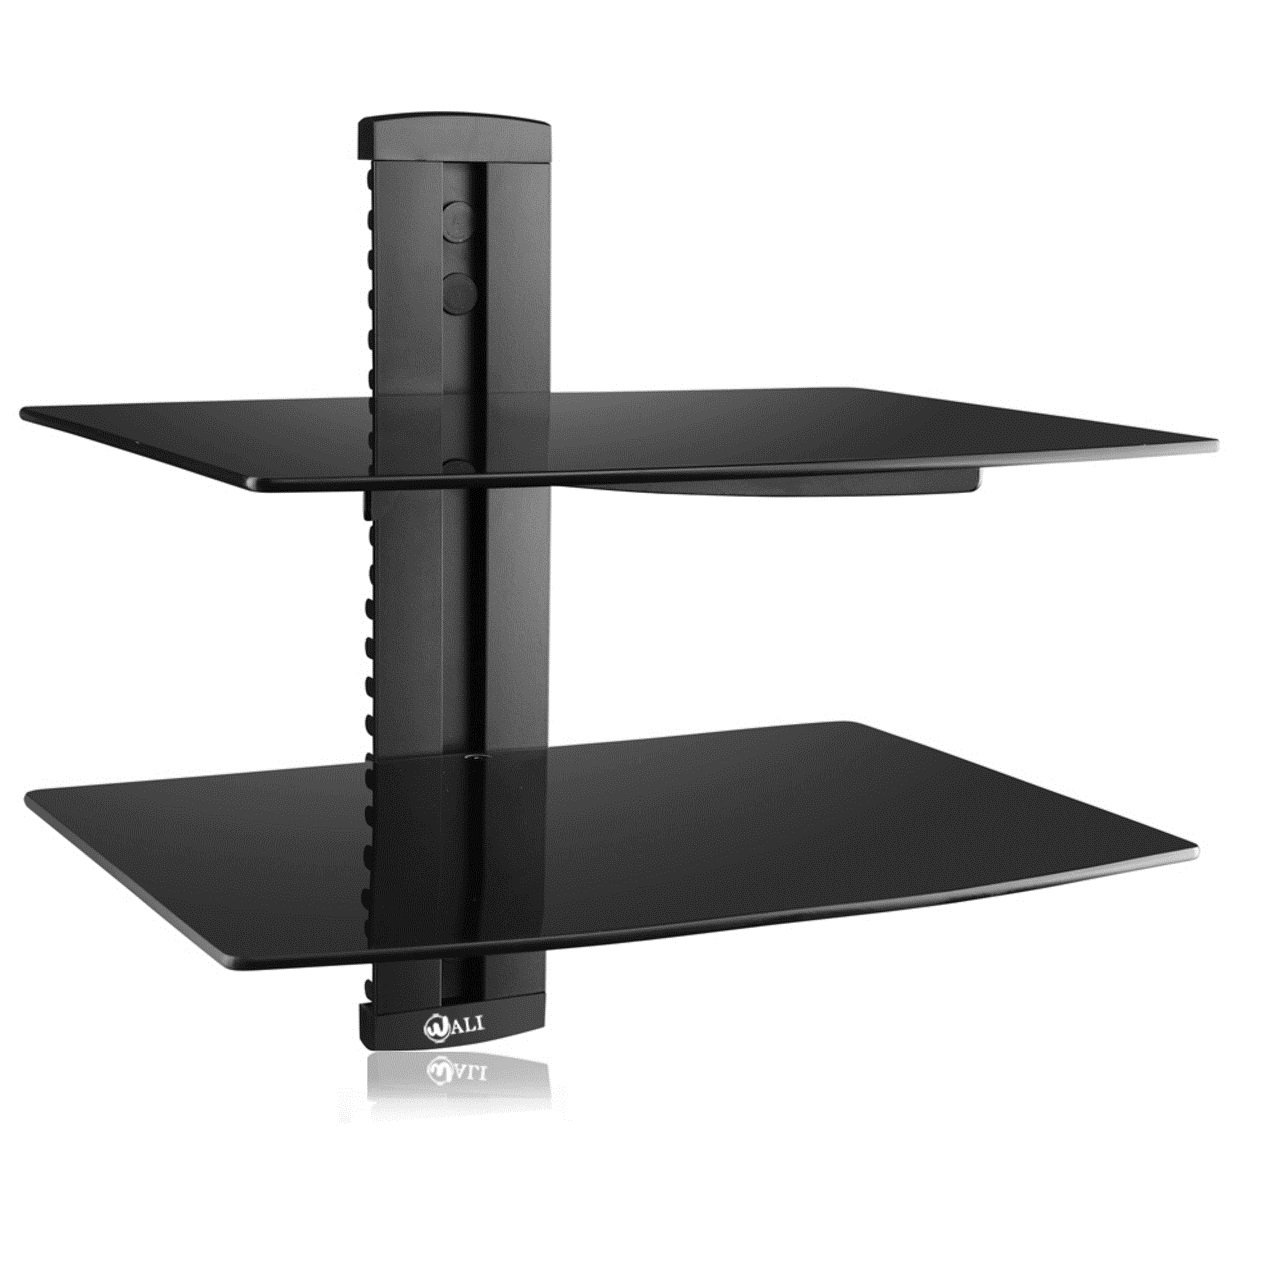 pdx wall floating it shelf brackets stand wayfair mount furniture bracket glass triple mounted